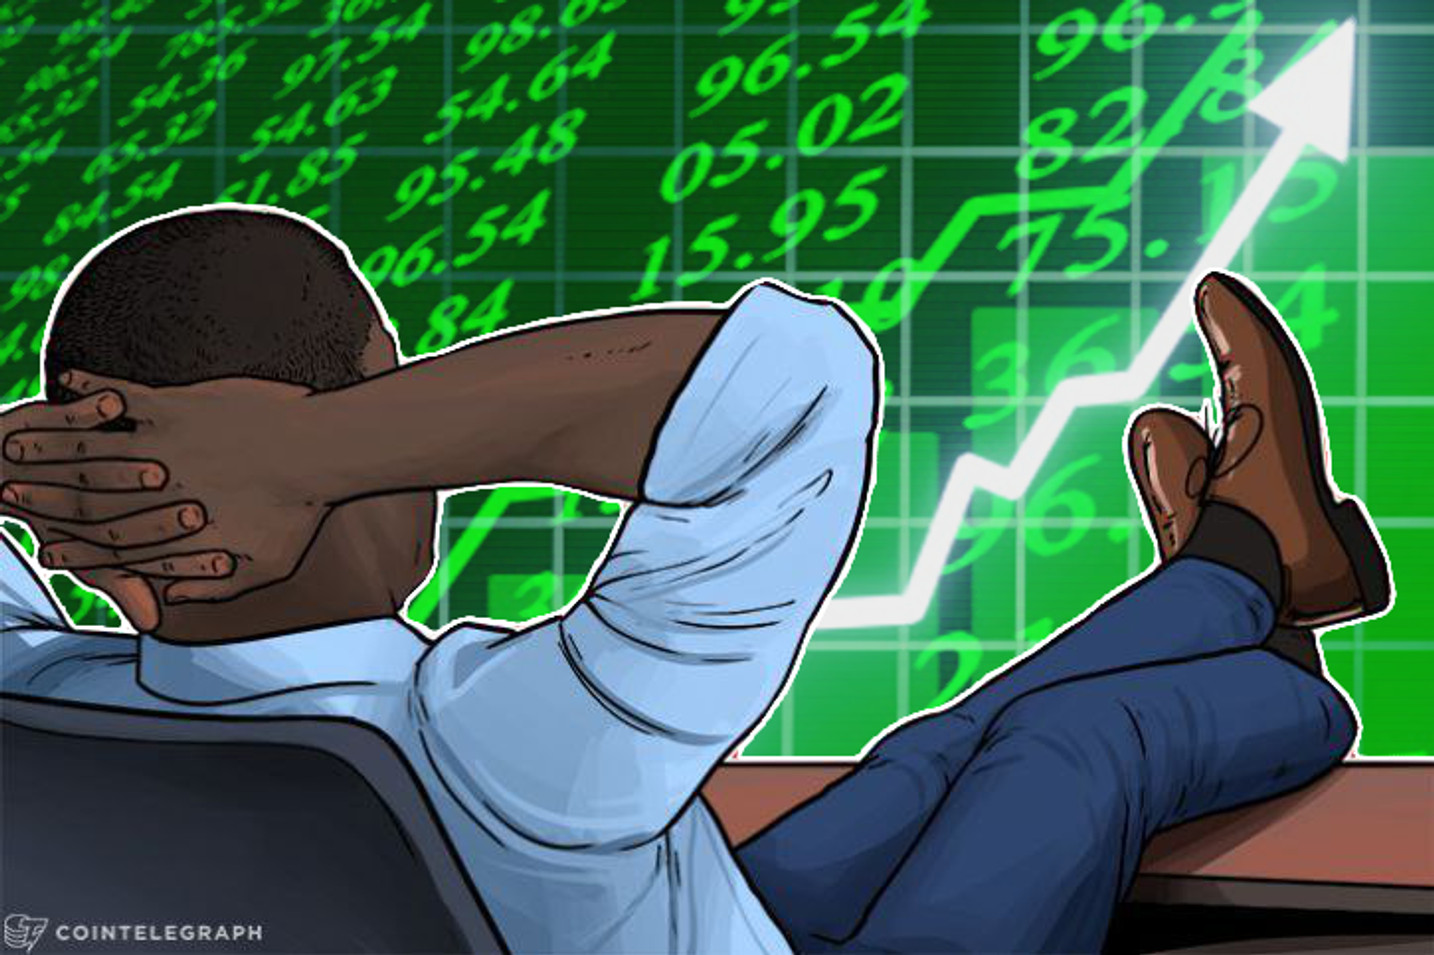 Total Crypto Market Cap Back Over $500 Bln, Bitcoin Pushes $11K